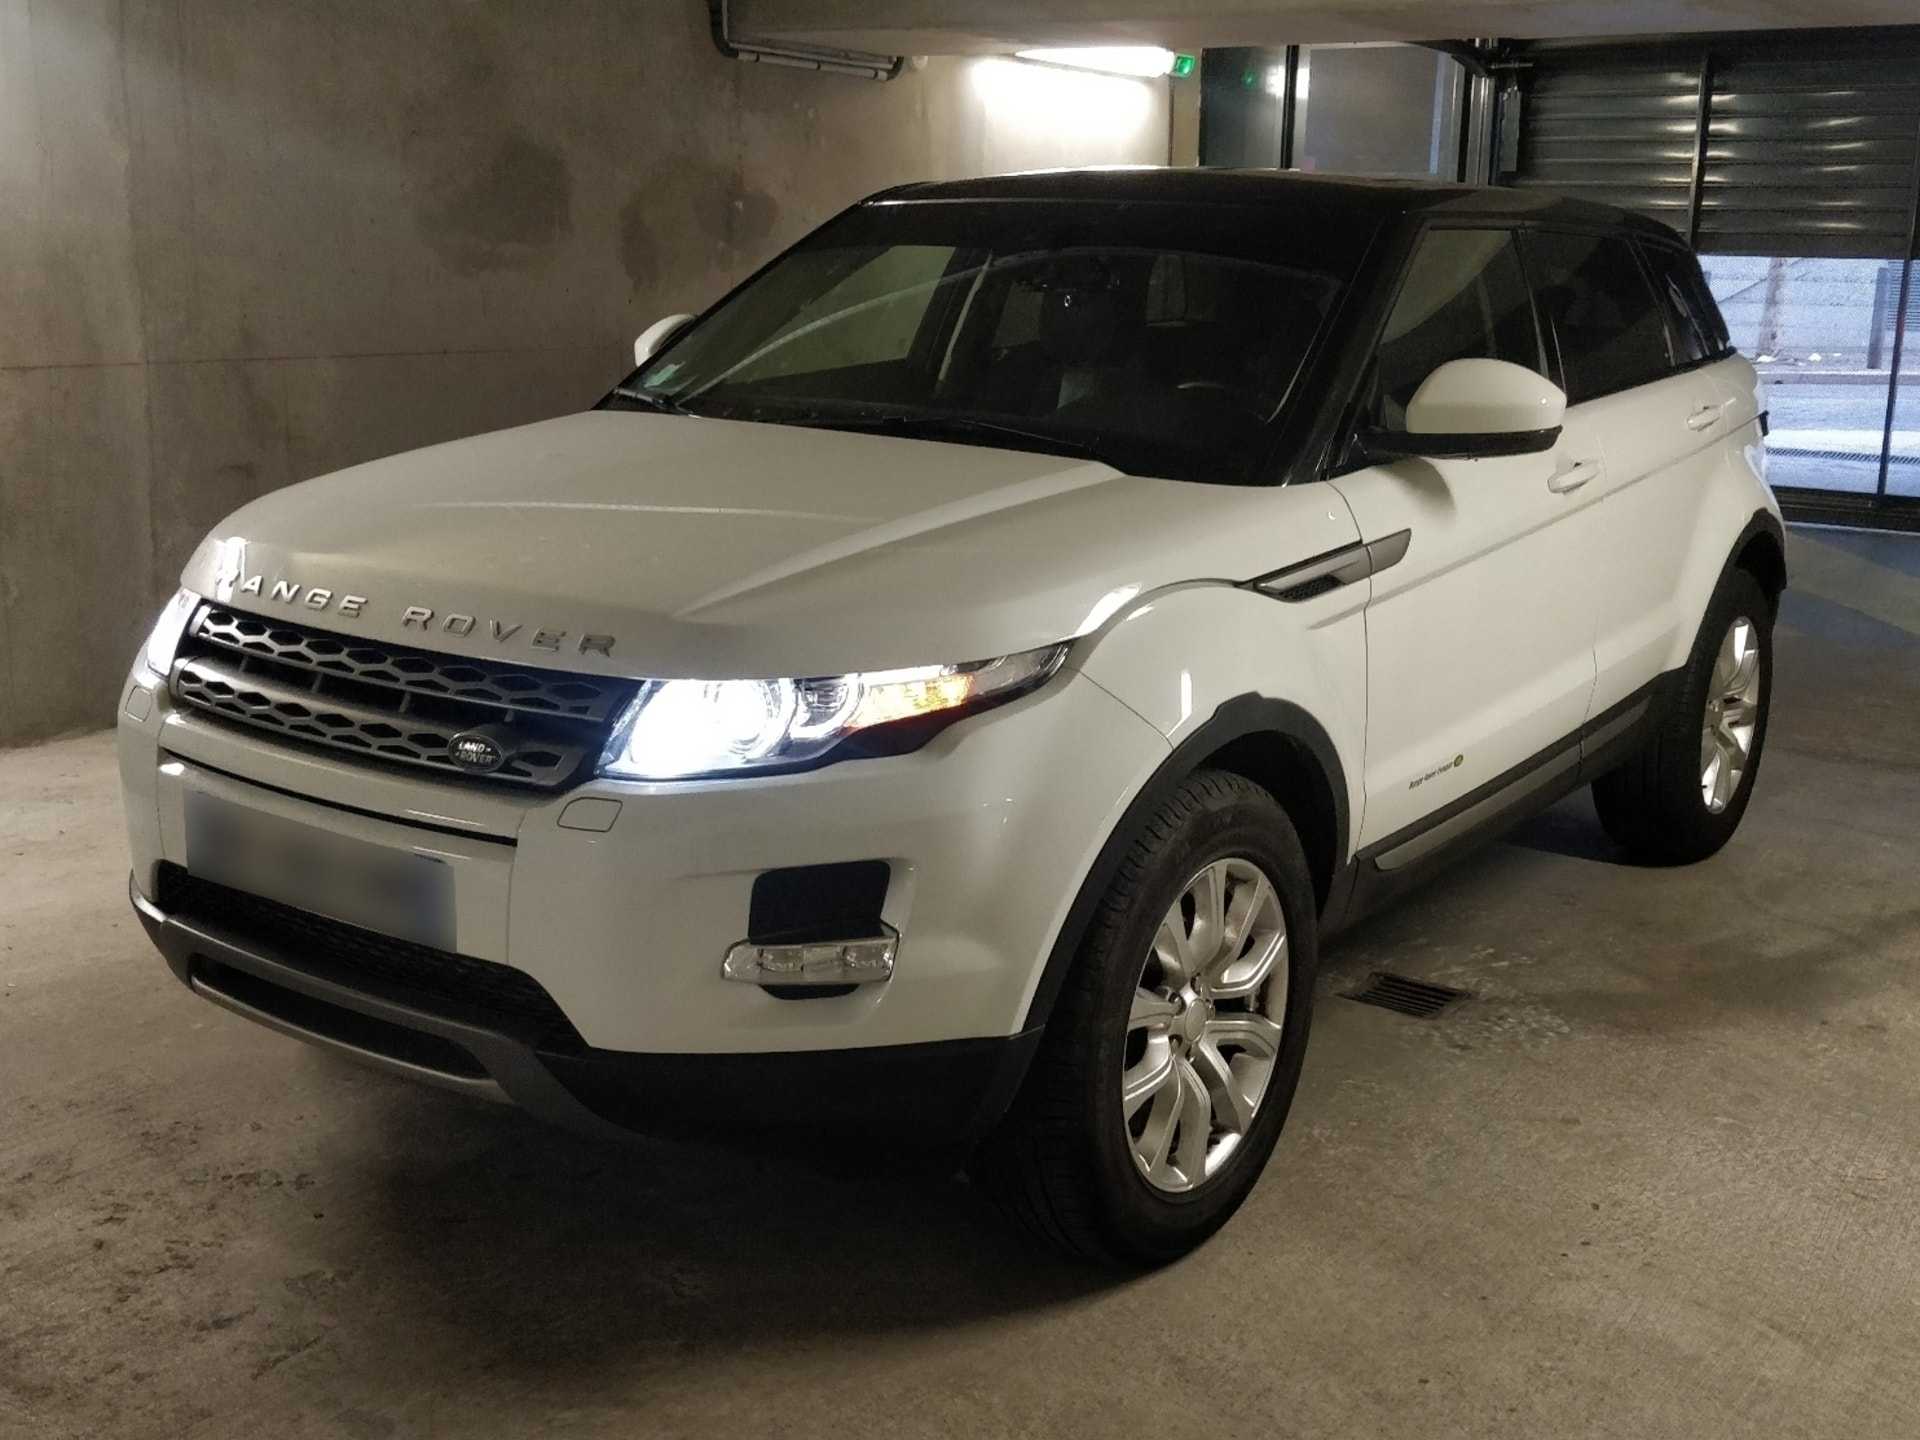 LAND ROVER EVOQUE 2.2 ED4 150 PURE PACK TECH 2WD - Carverntura